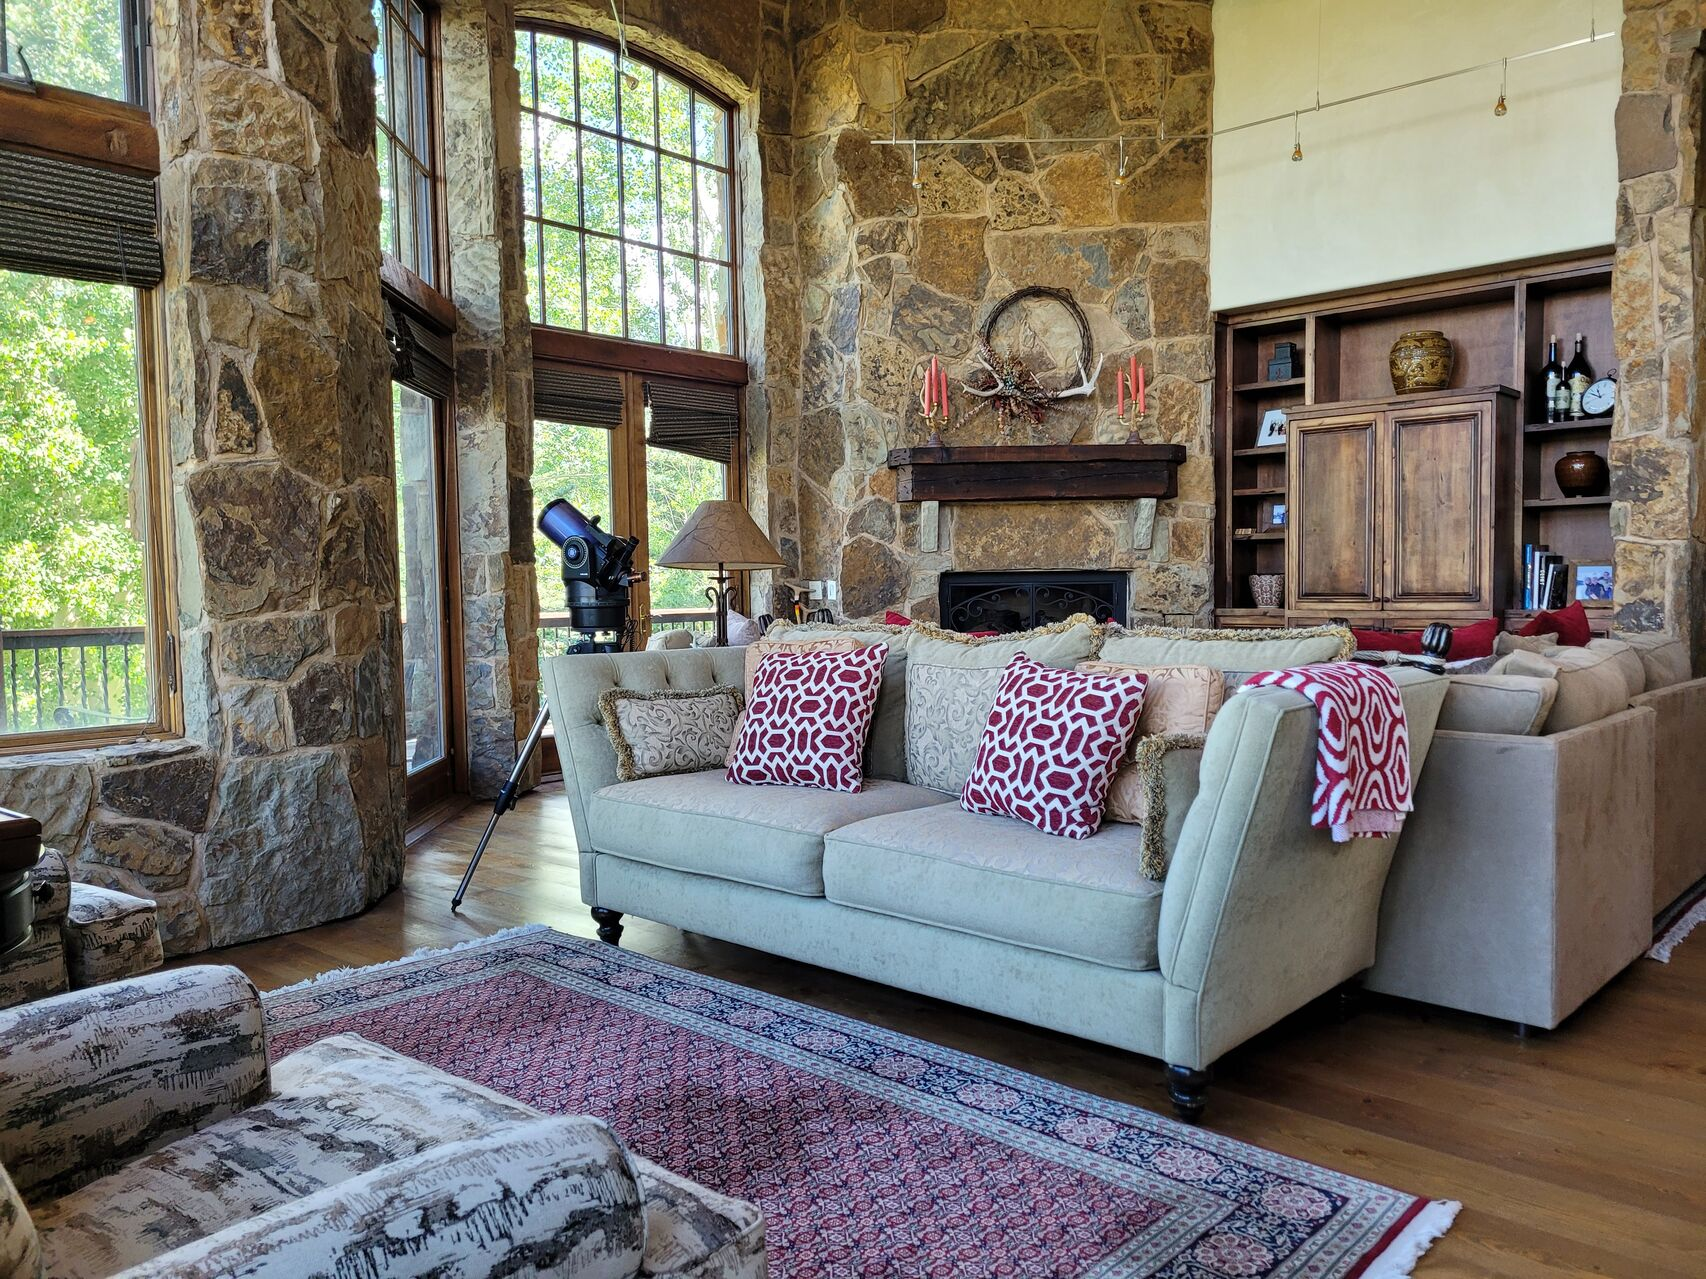 Cozy living room with stone walls